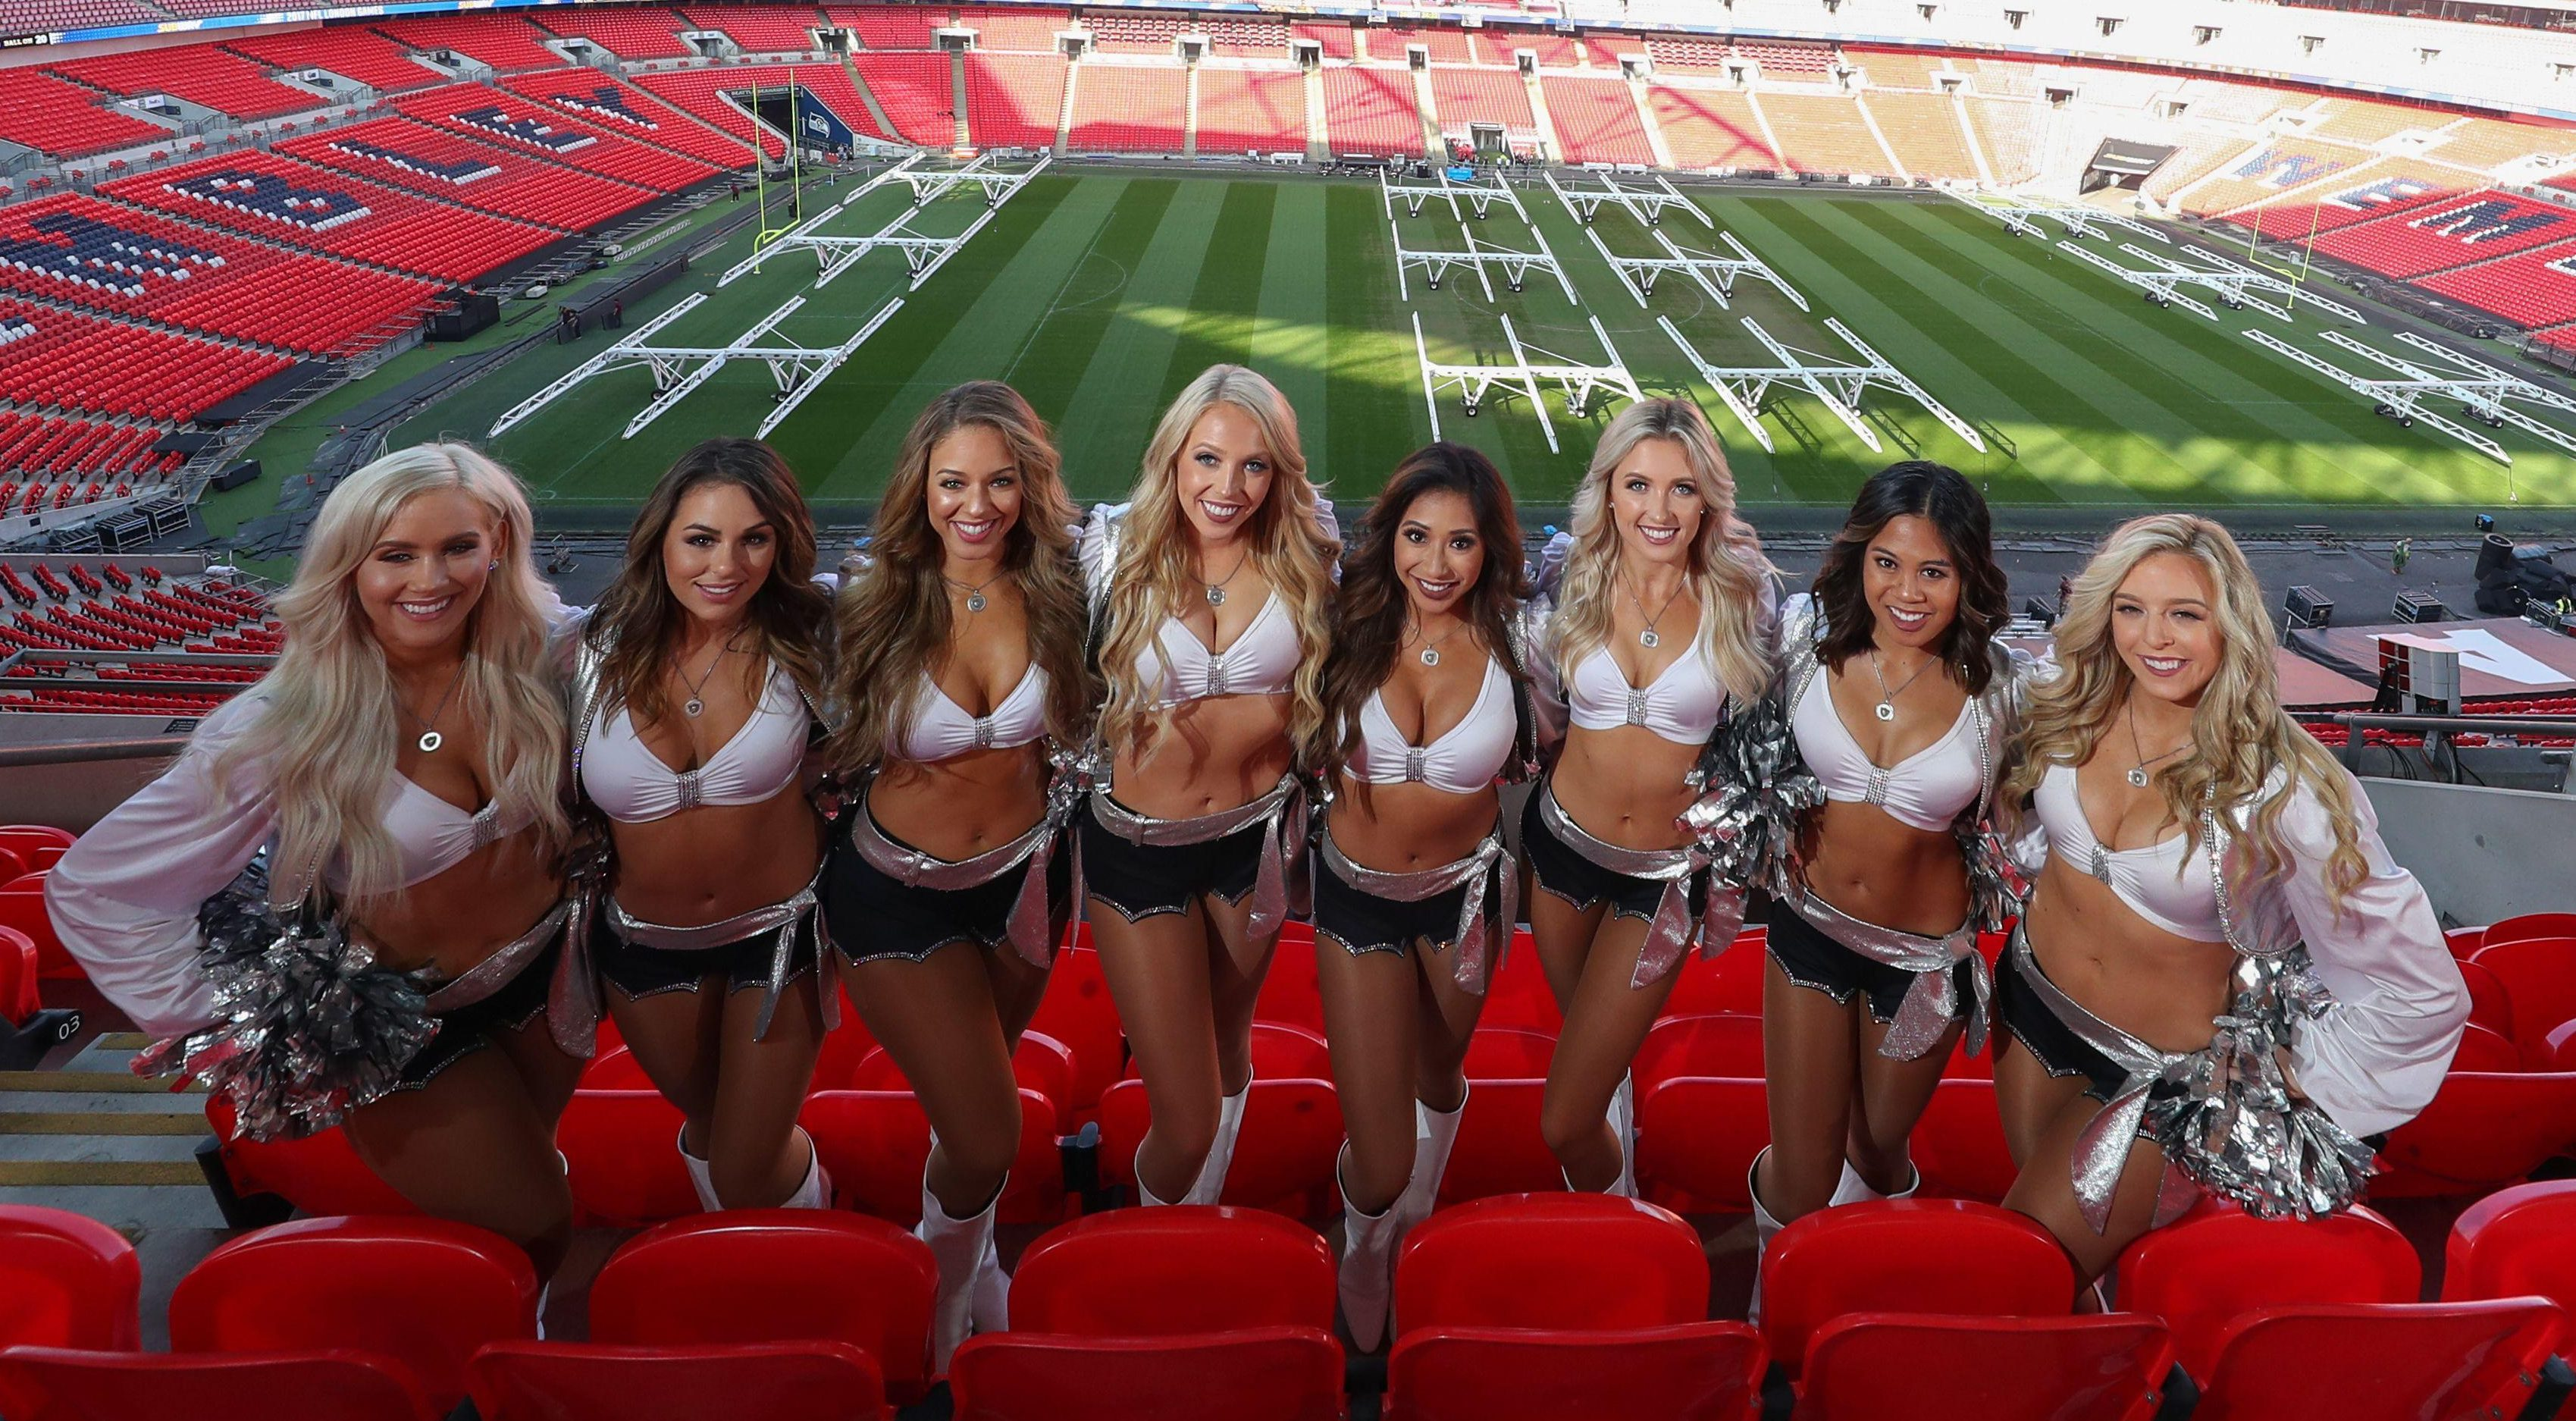 Wembley is hosting three NFL games as part of its International Series